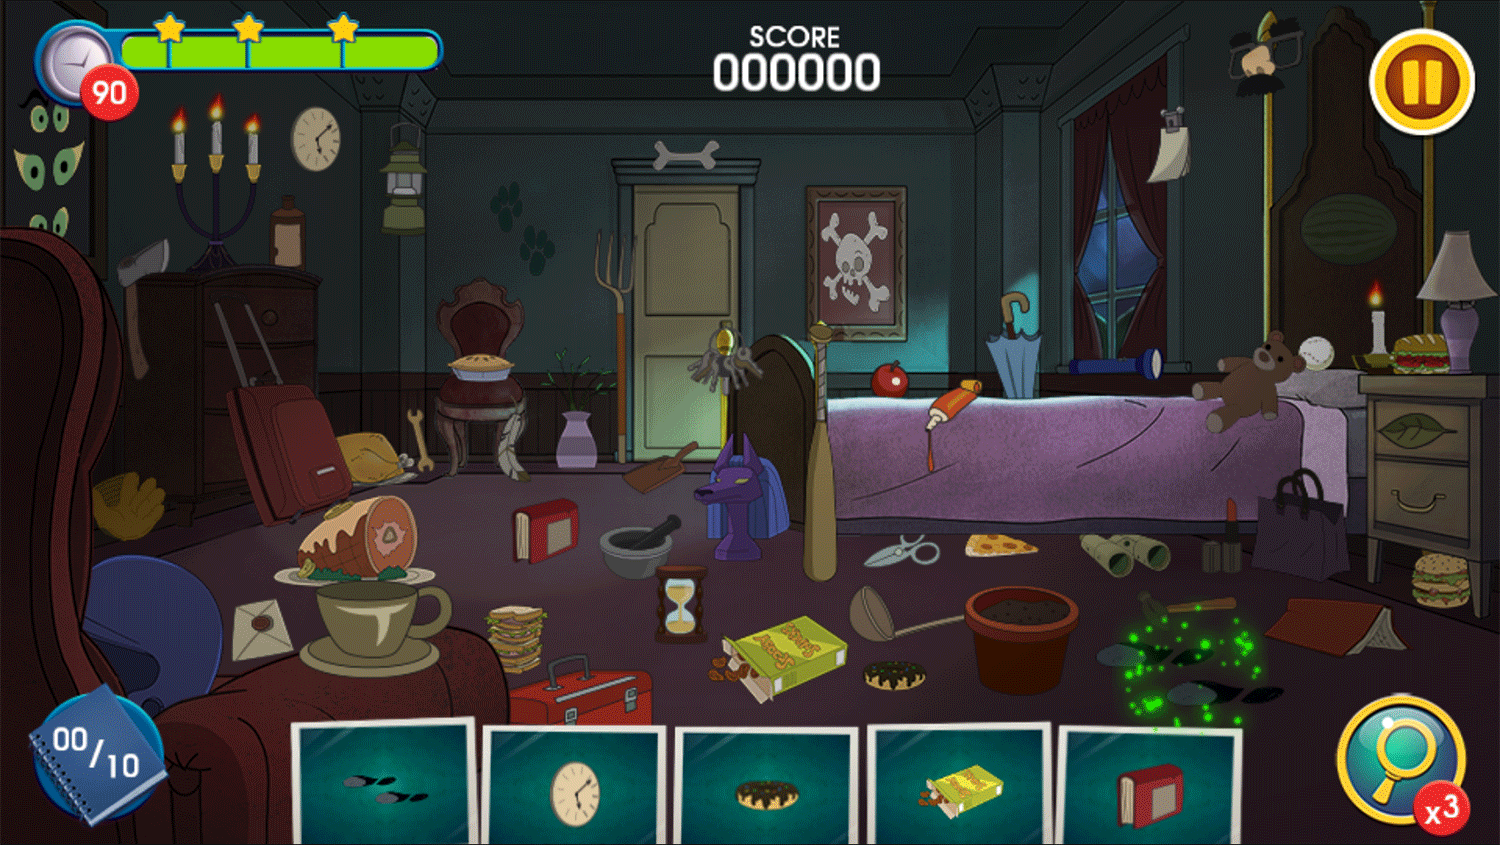 Be Cool Scooby Doo the Mysterious Mansion Game Screenshot.